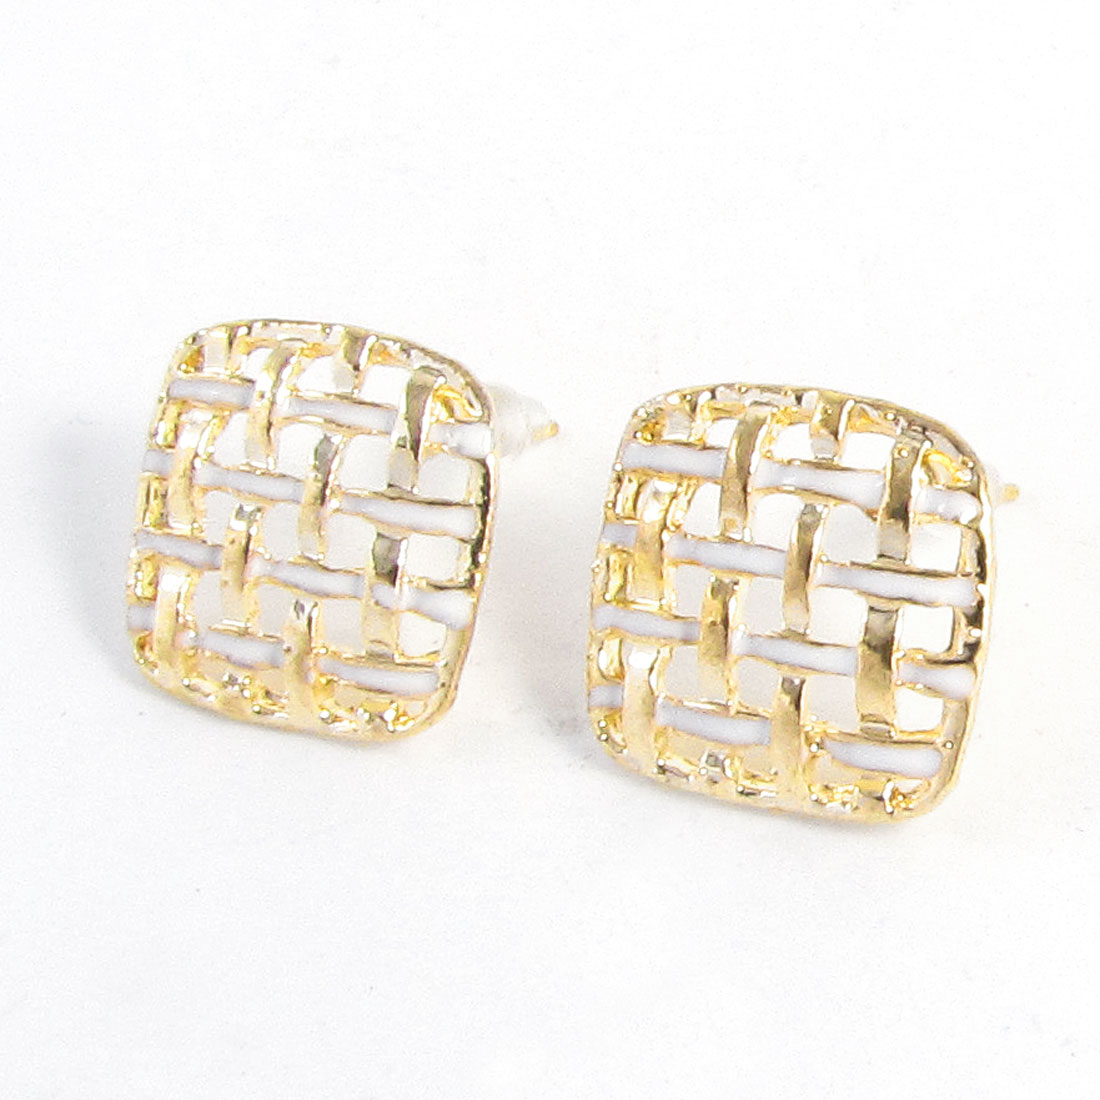 Ladies Ear Ornament Gold Tone White Hollow Out Design Square Stud Earrings Pair